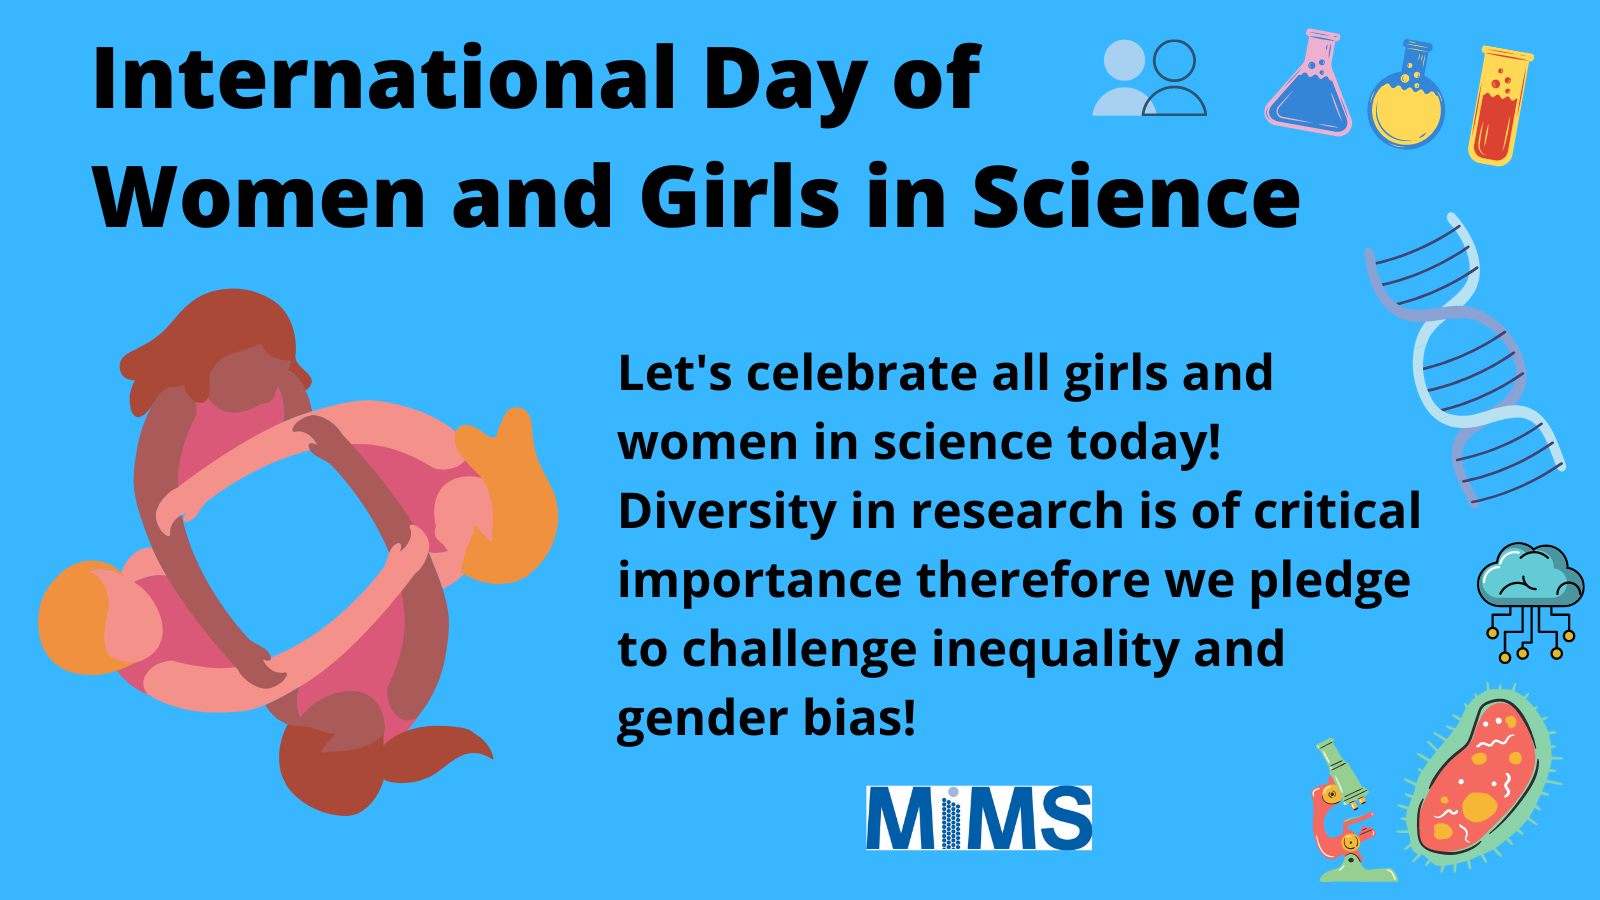 International Day of Women and Girls in Science MIMS 2021